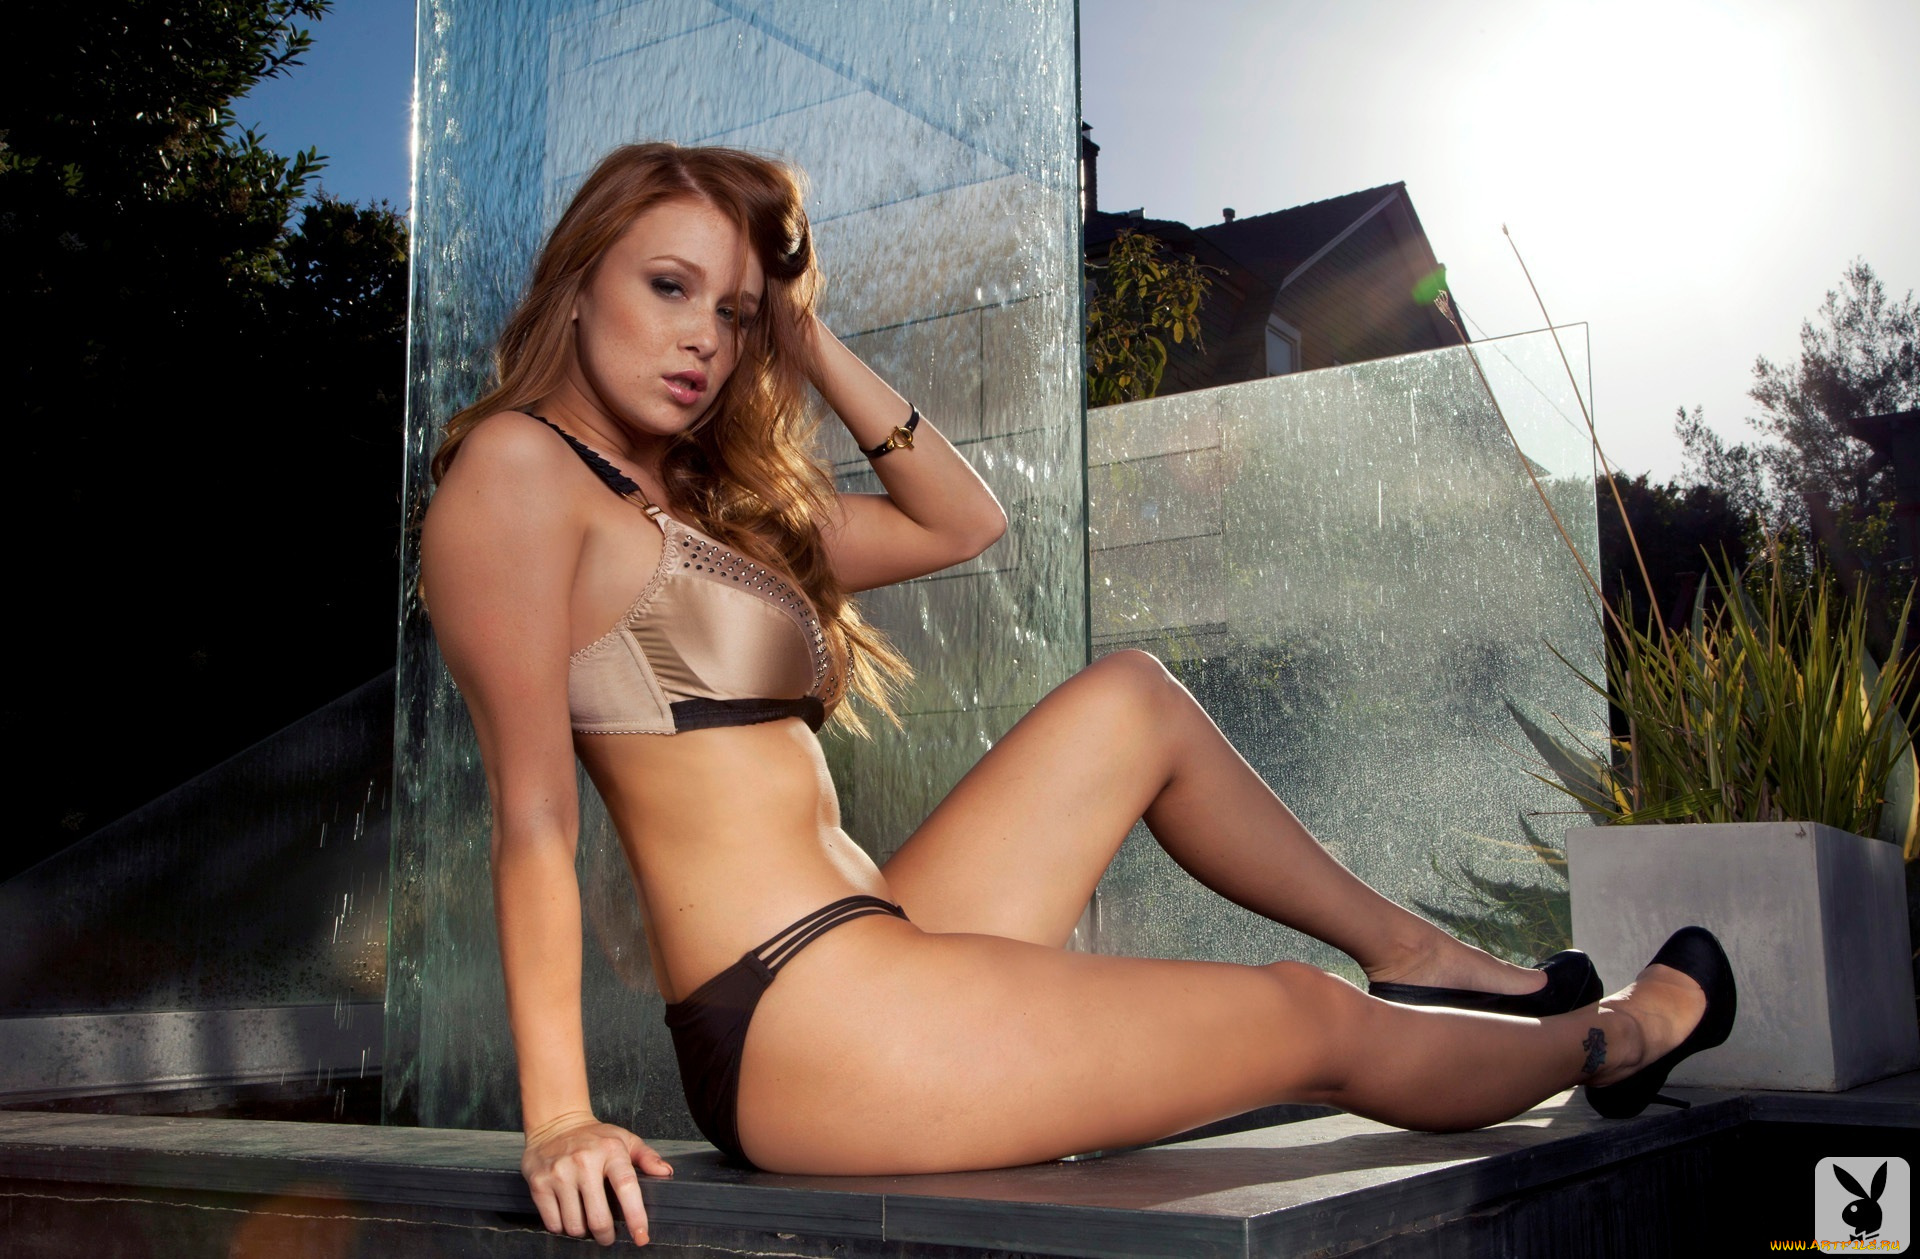 Leanna Decker doffs her elegant gown to pose erotically near the fireplace  1103014